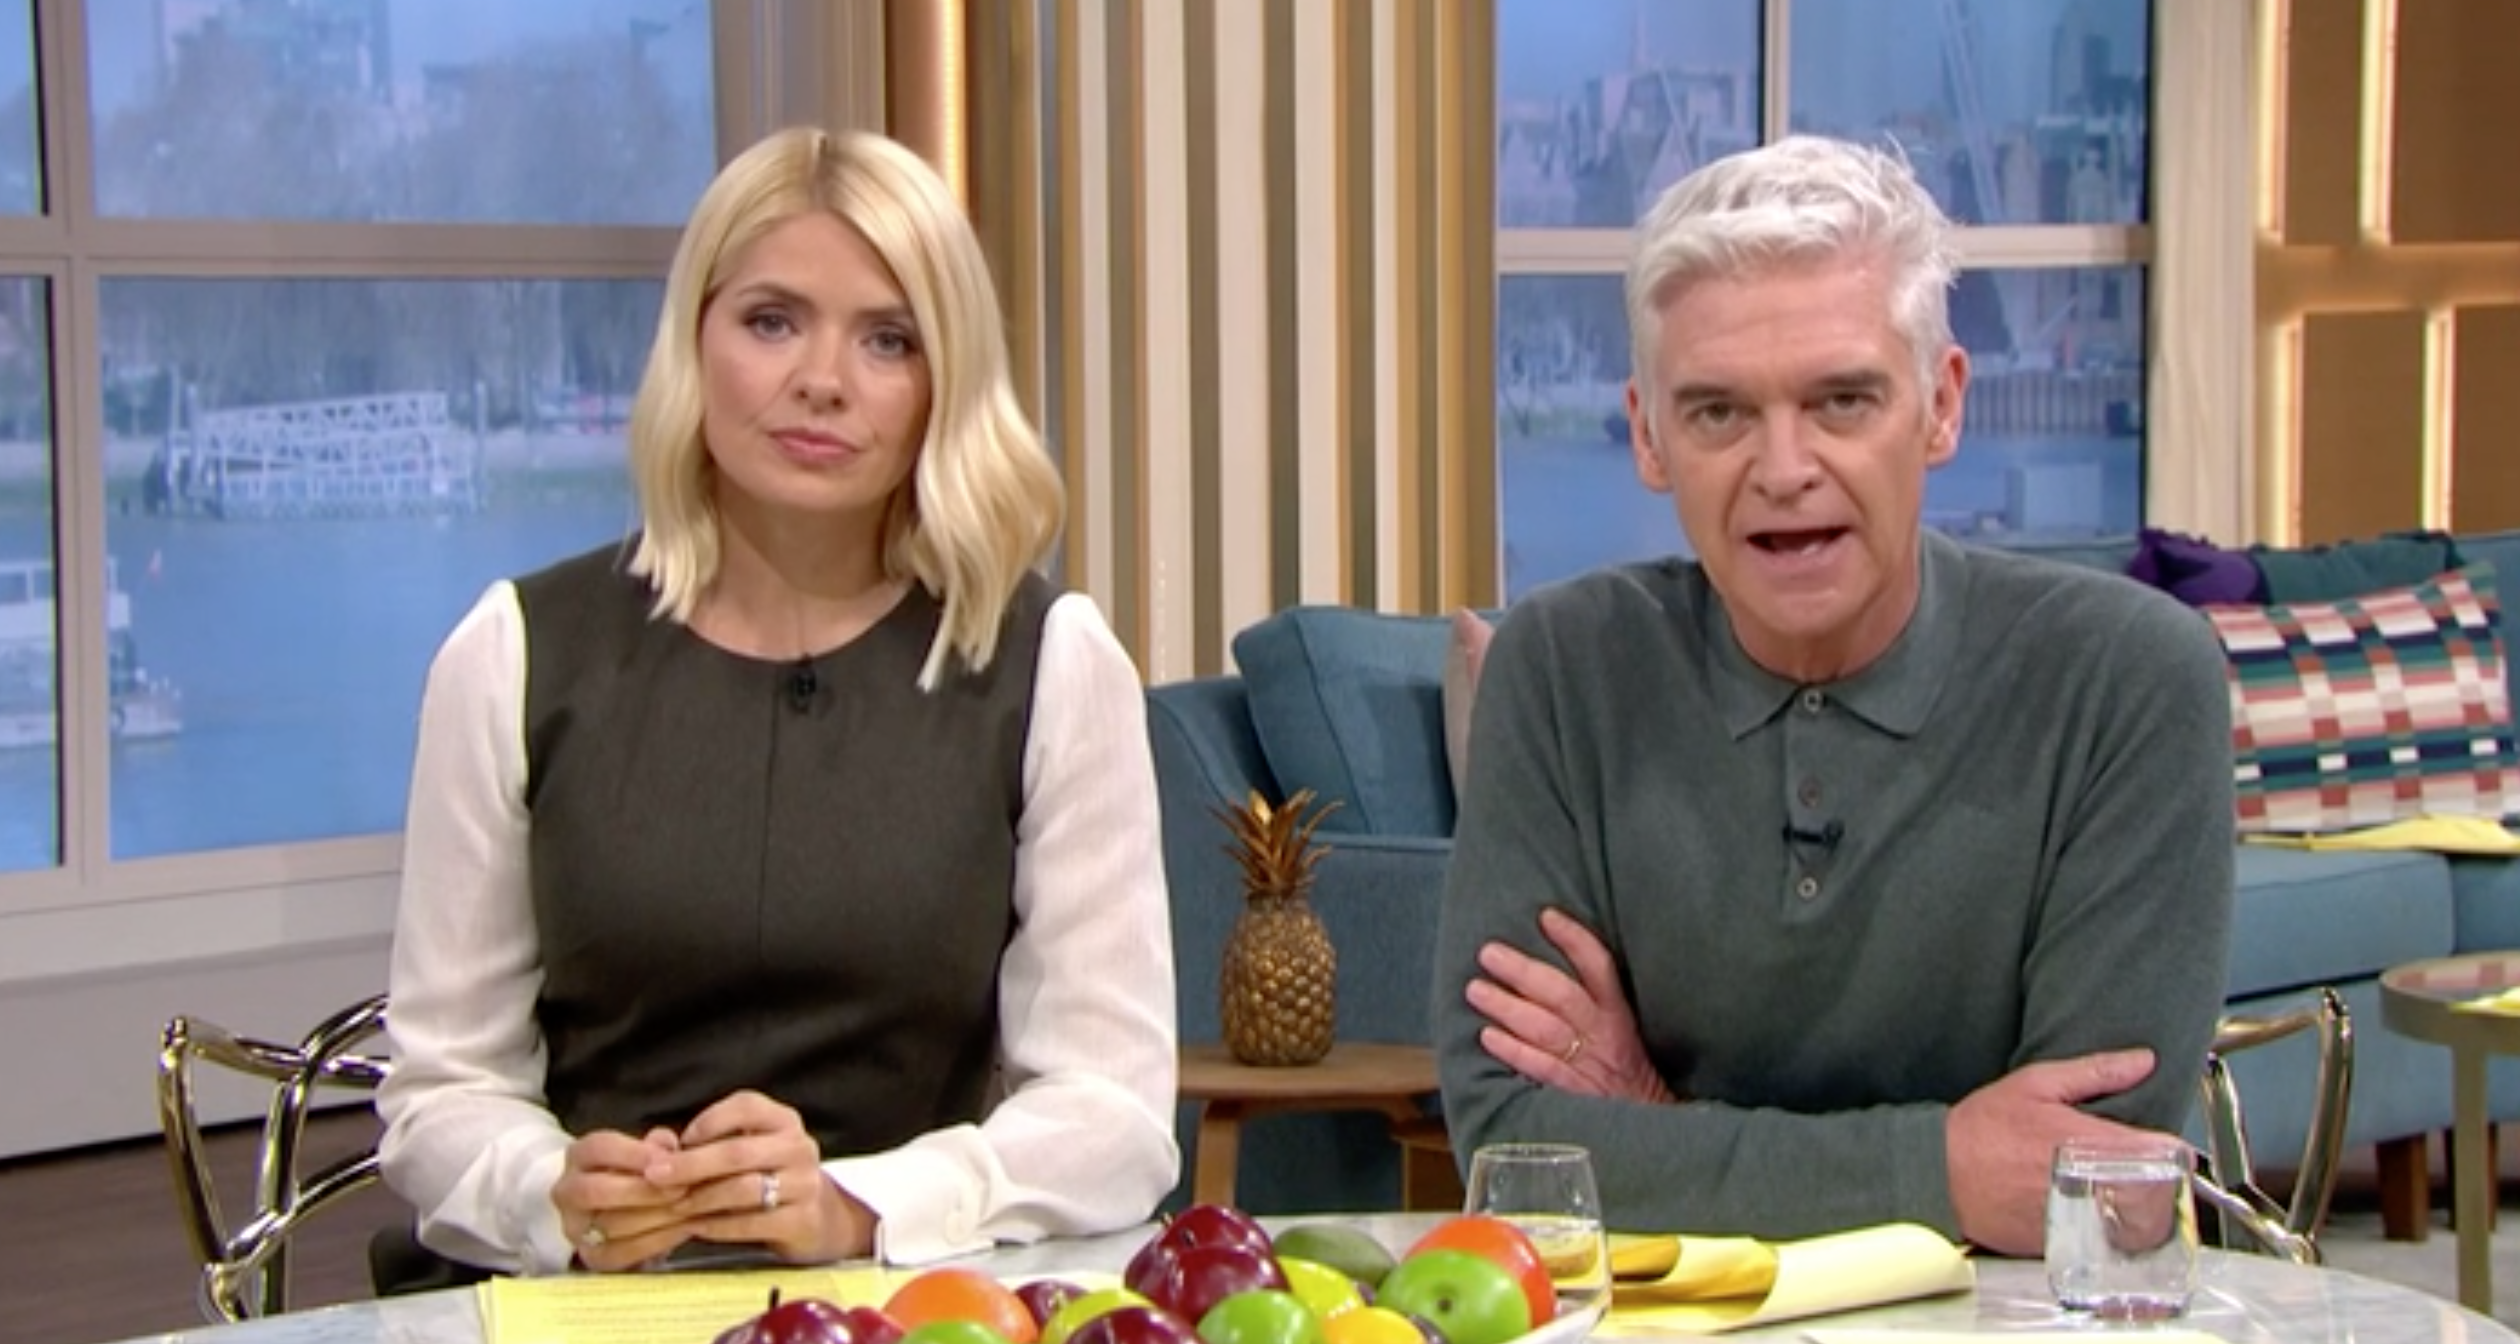 Holly Willoughby and Phillip Schofield 'spark pay row on This Morning after receiving a raise'